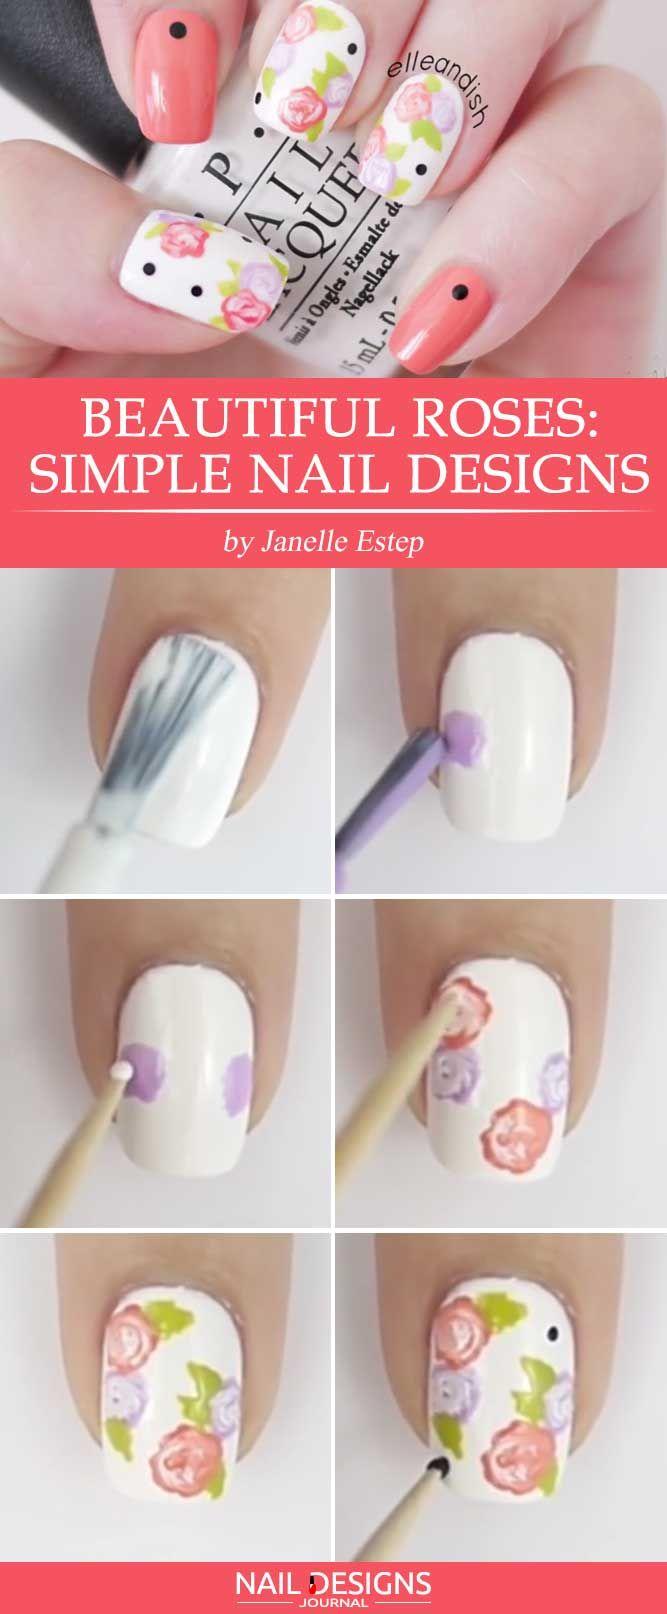 15 Step by Step Tutorials How to do Nail Designs at Home | Simple ...